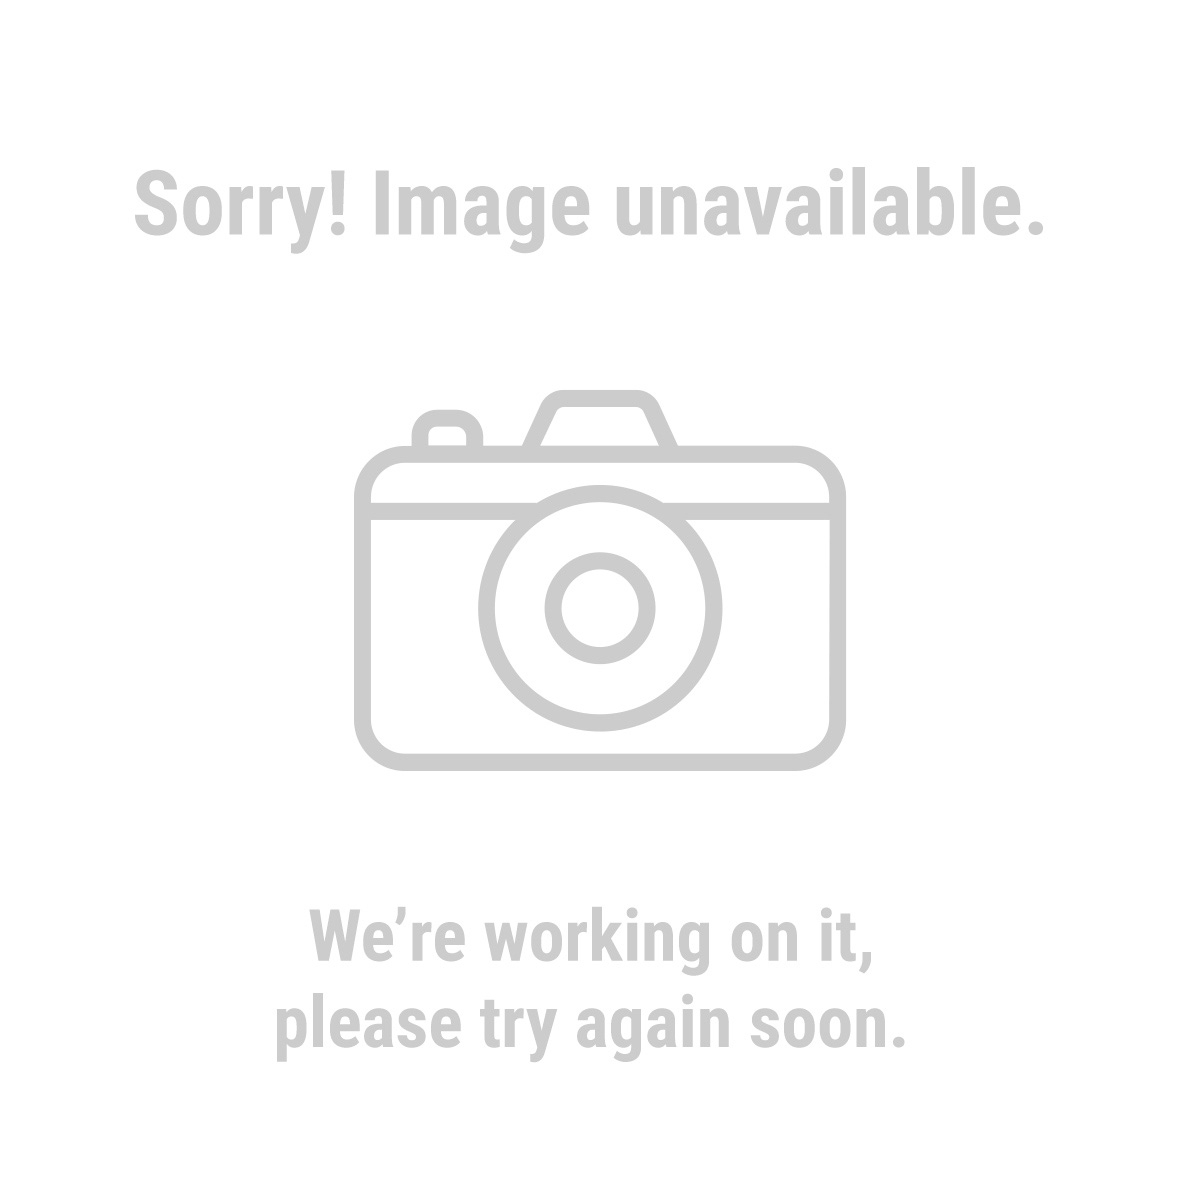 Storehouse 66681 10 Pack 10-12 Gauge Watertight Heat-Shrink Ring Terminals